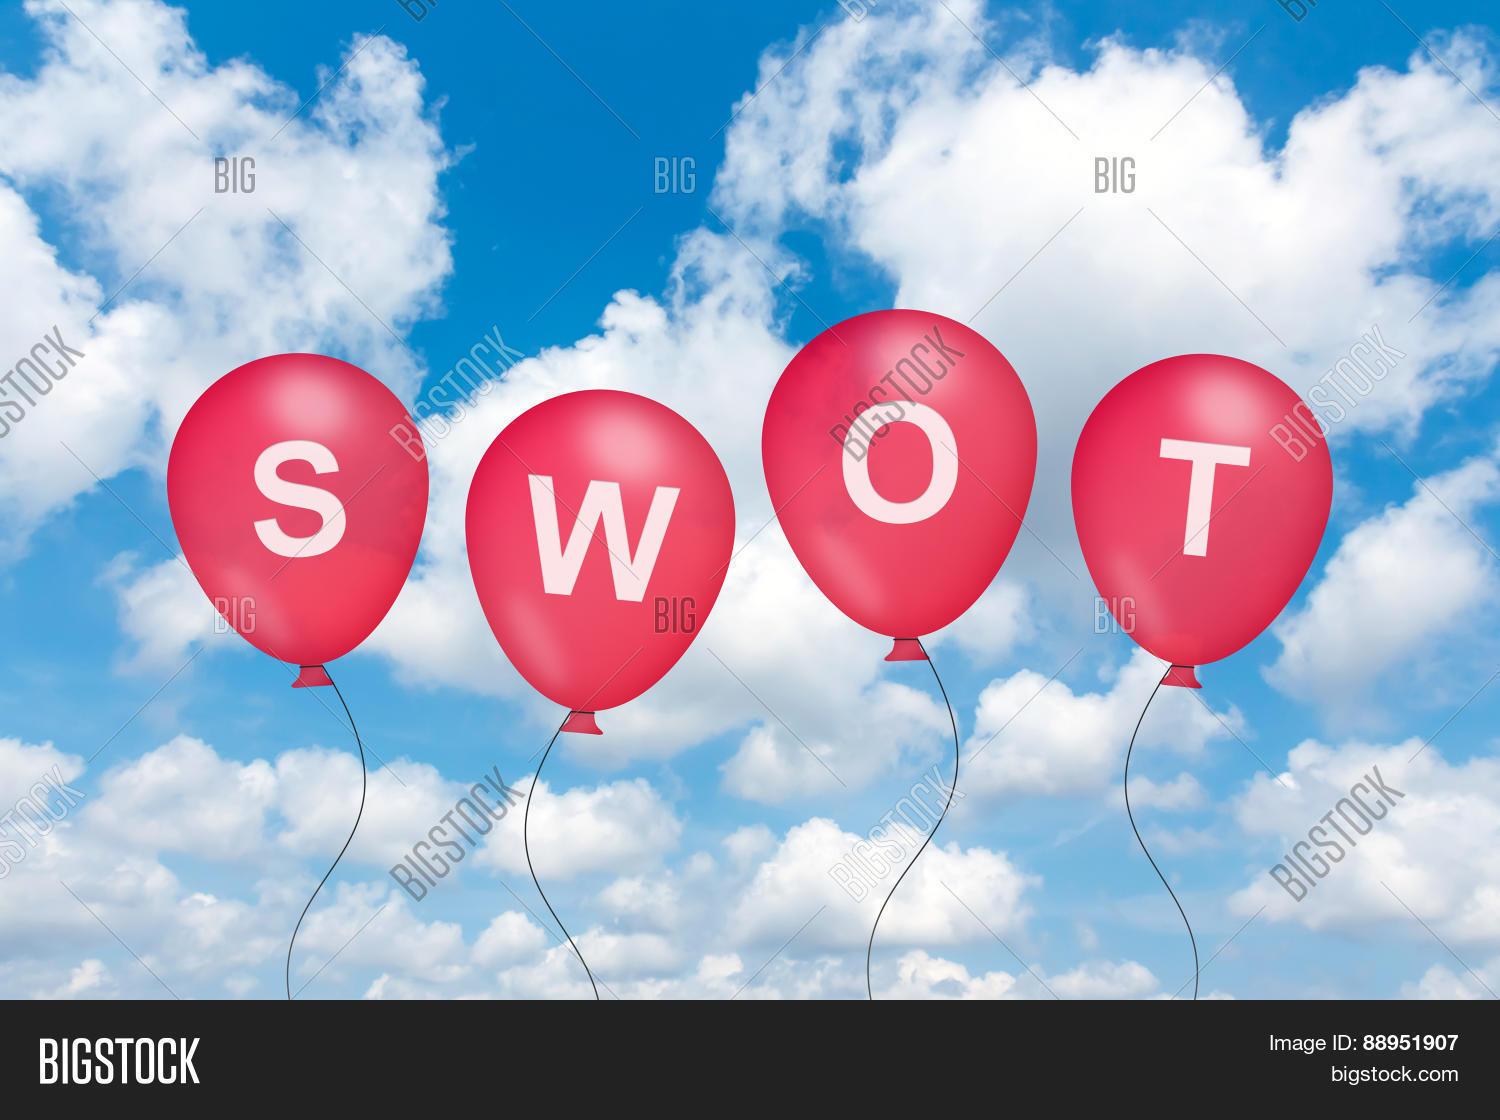 swot analysis or strengths weaknesses opportunities and threats swot analysis or strengths weaknesses opportunities and threats text on balloon